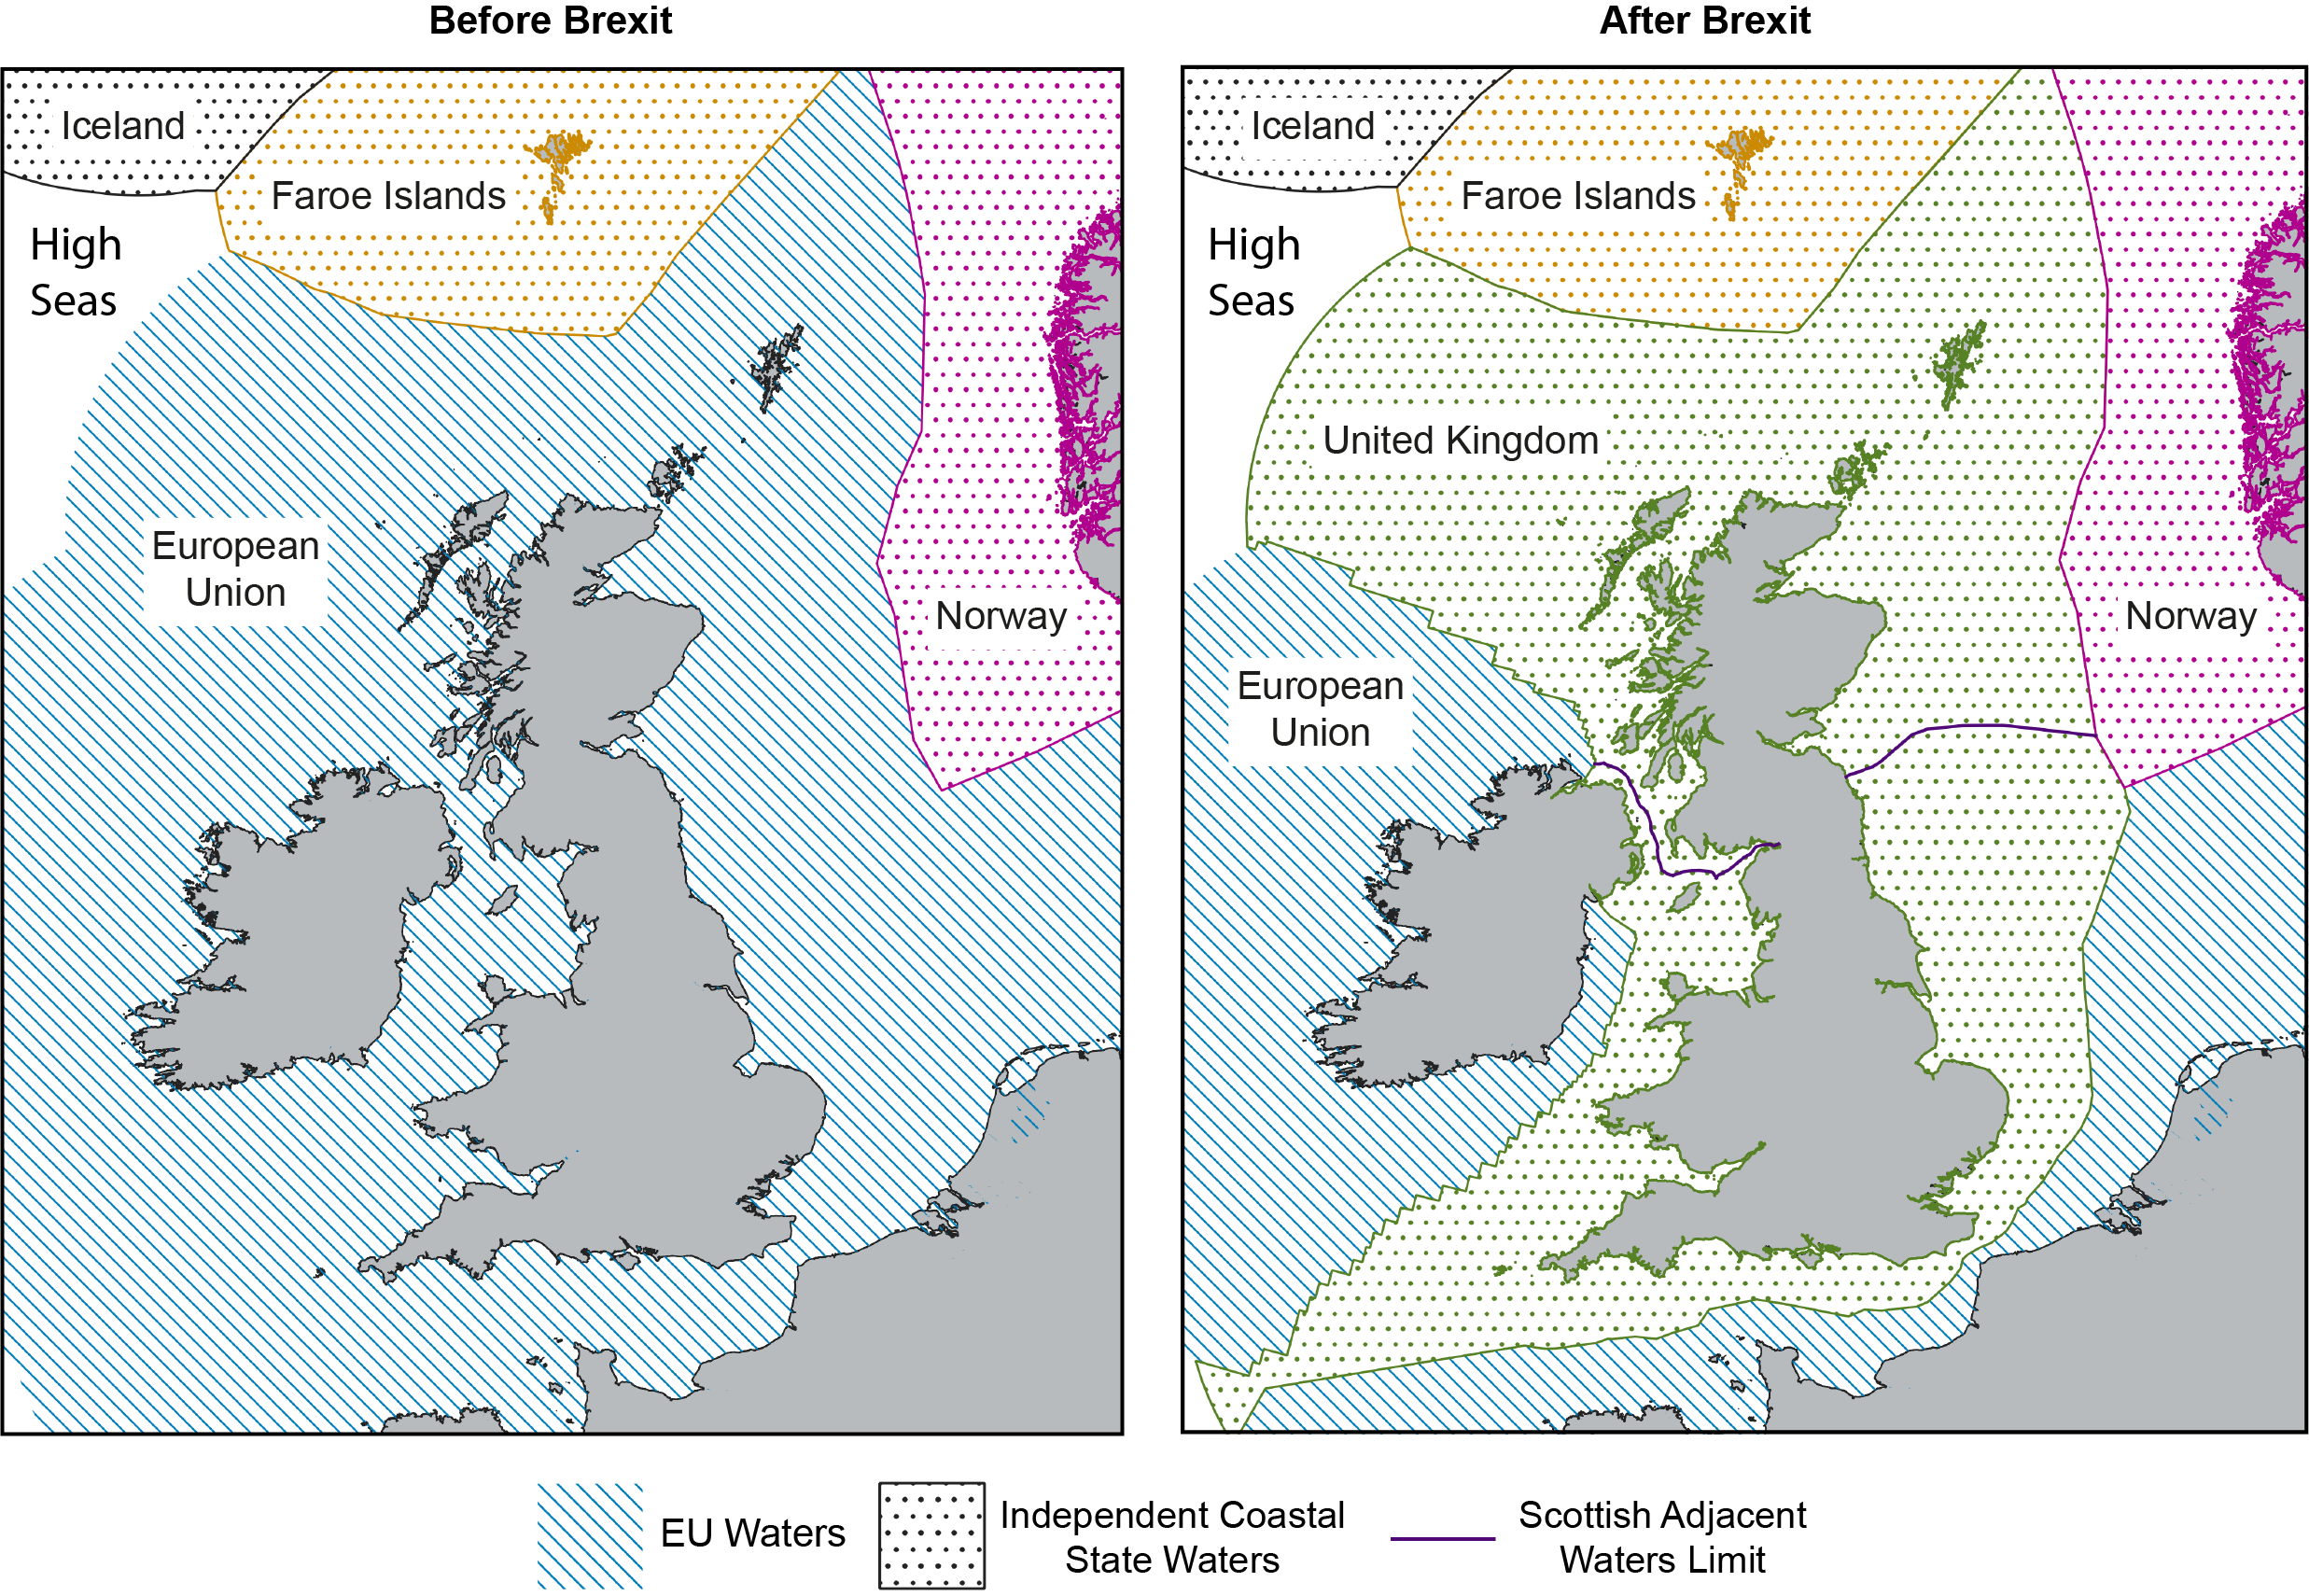 EU and UK Exclusive Economic Zone